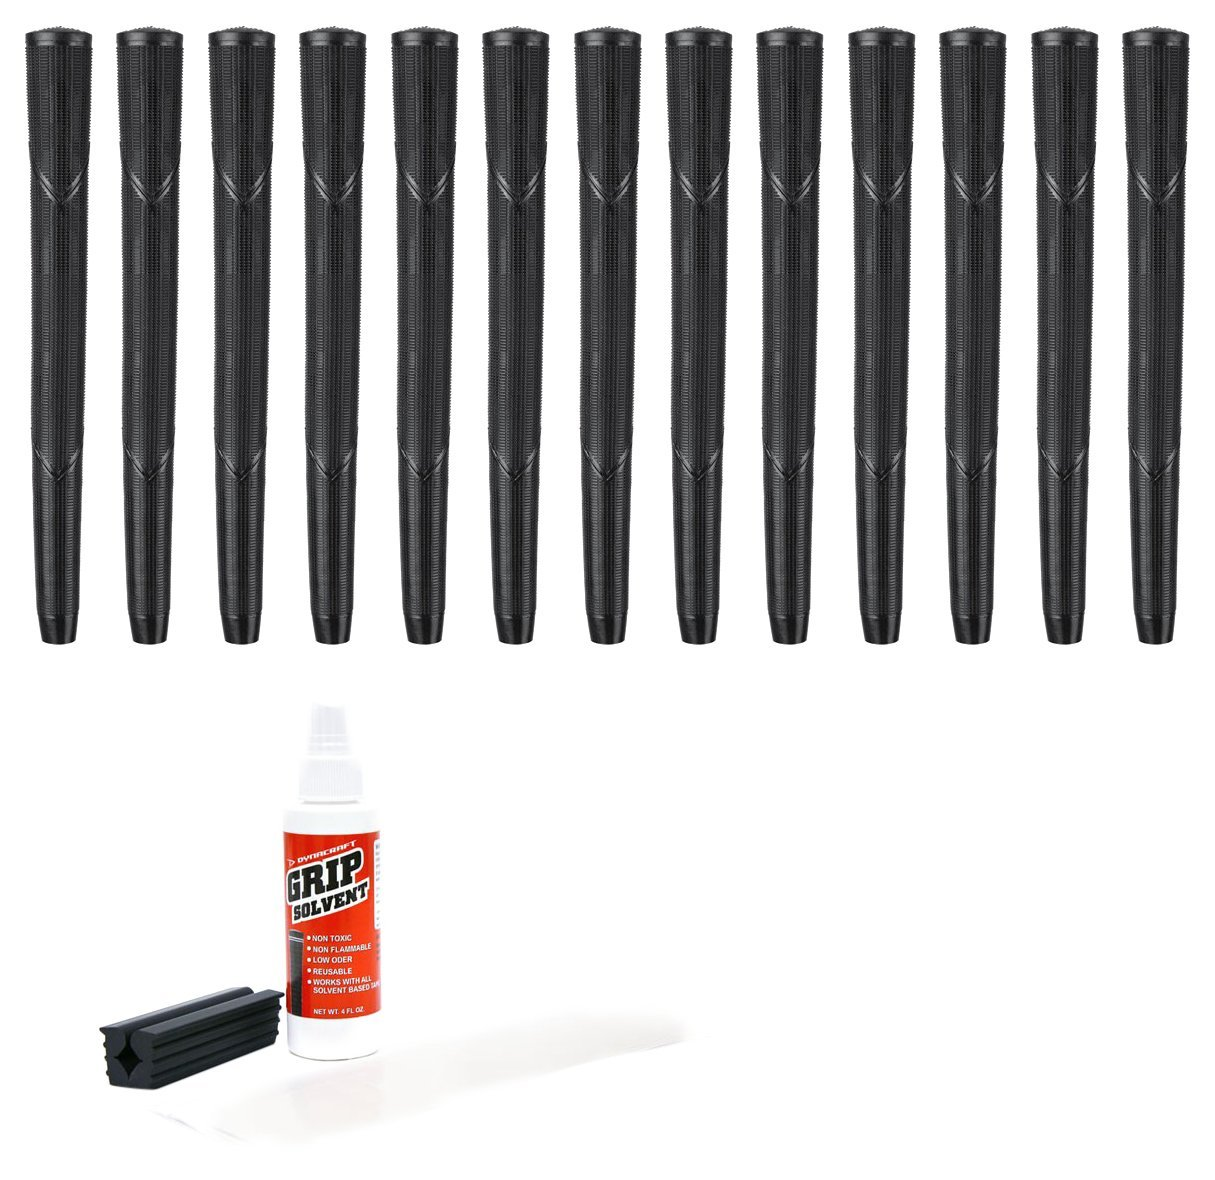 Arthritic 13 Piece Golf Grip Kit (with Tape, Solvent, Vis...